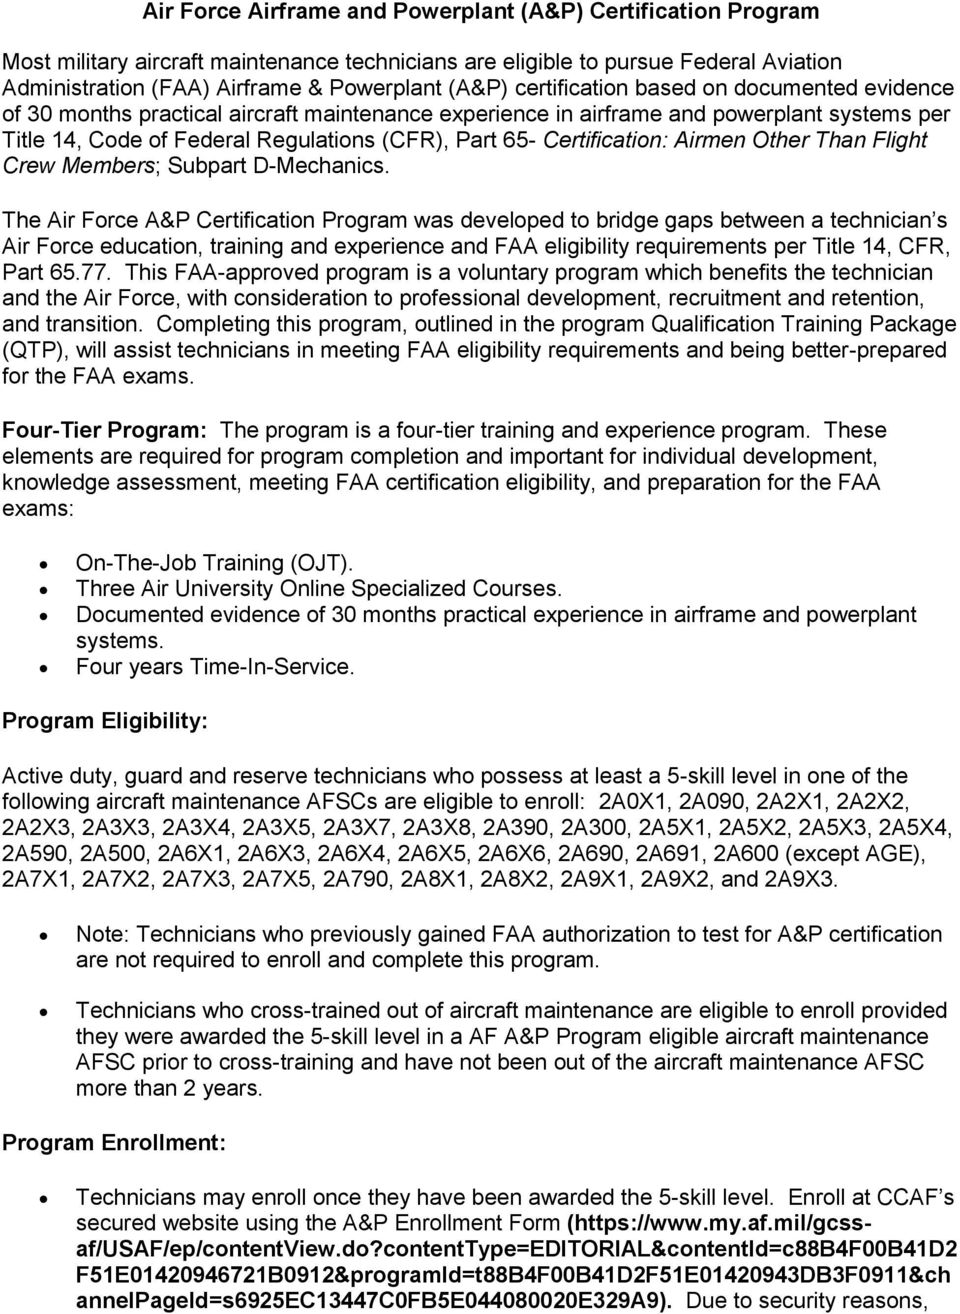 Air force airframe and powerplant ap certification program pdf certification airmen other than flight crew members subpart d mechanics 1betcityfo Image collections